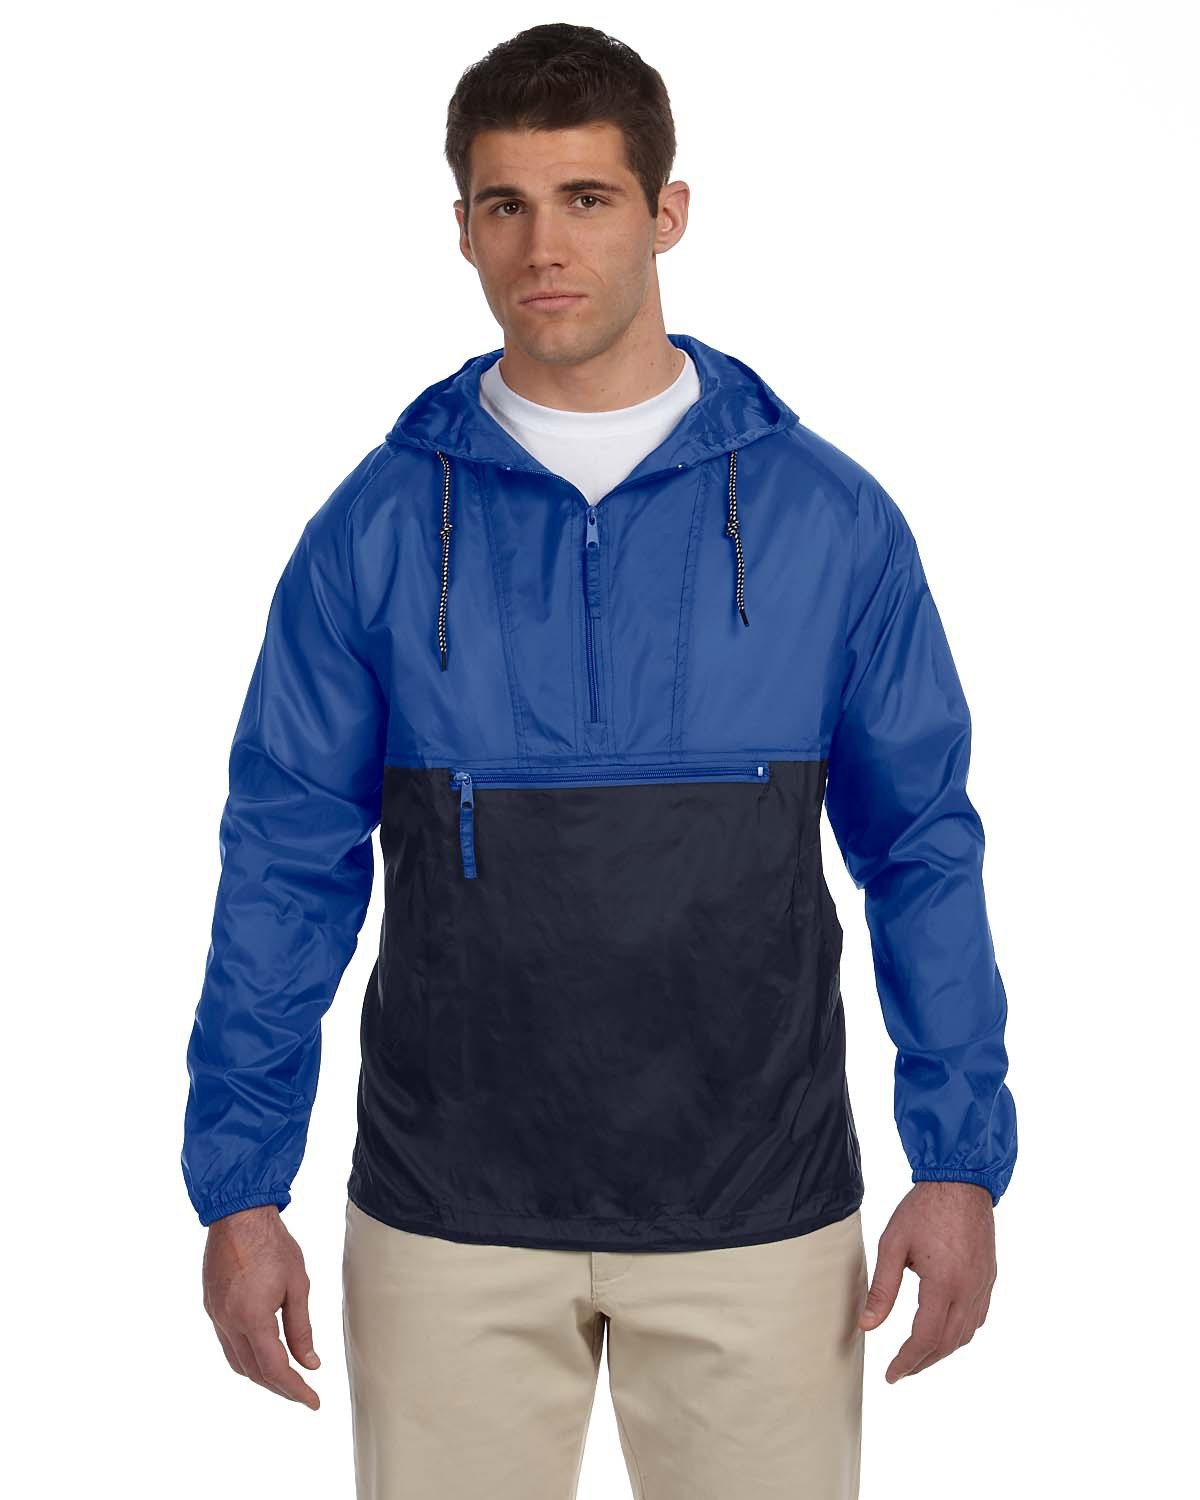 Packable nylon jackets